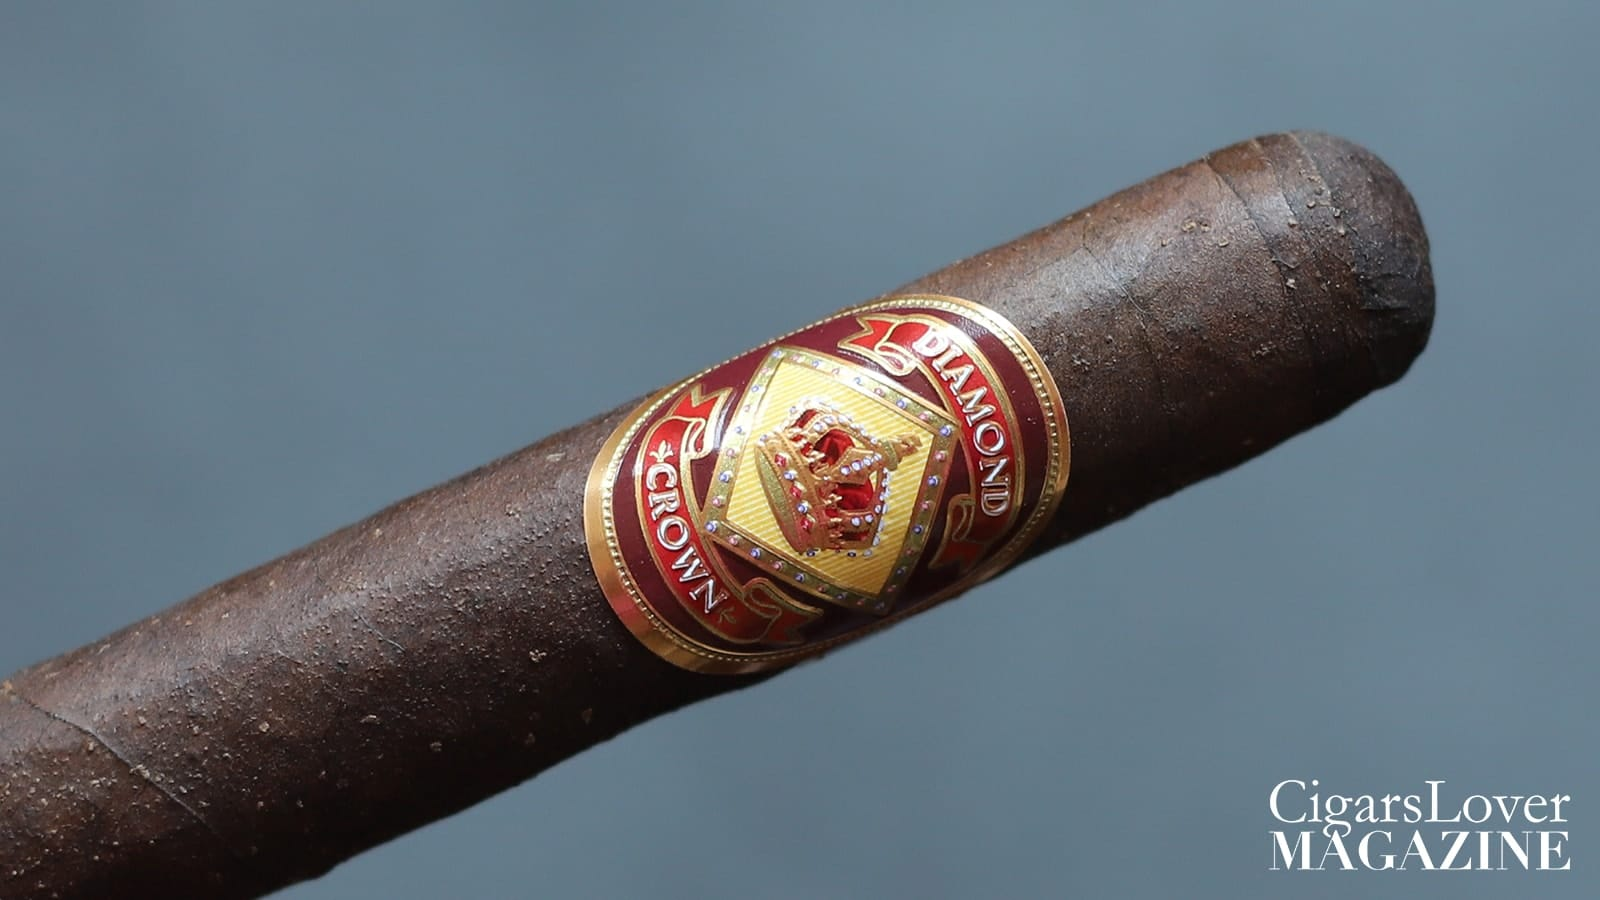 Diamond Crown Maduro Robusto No. 4